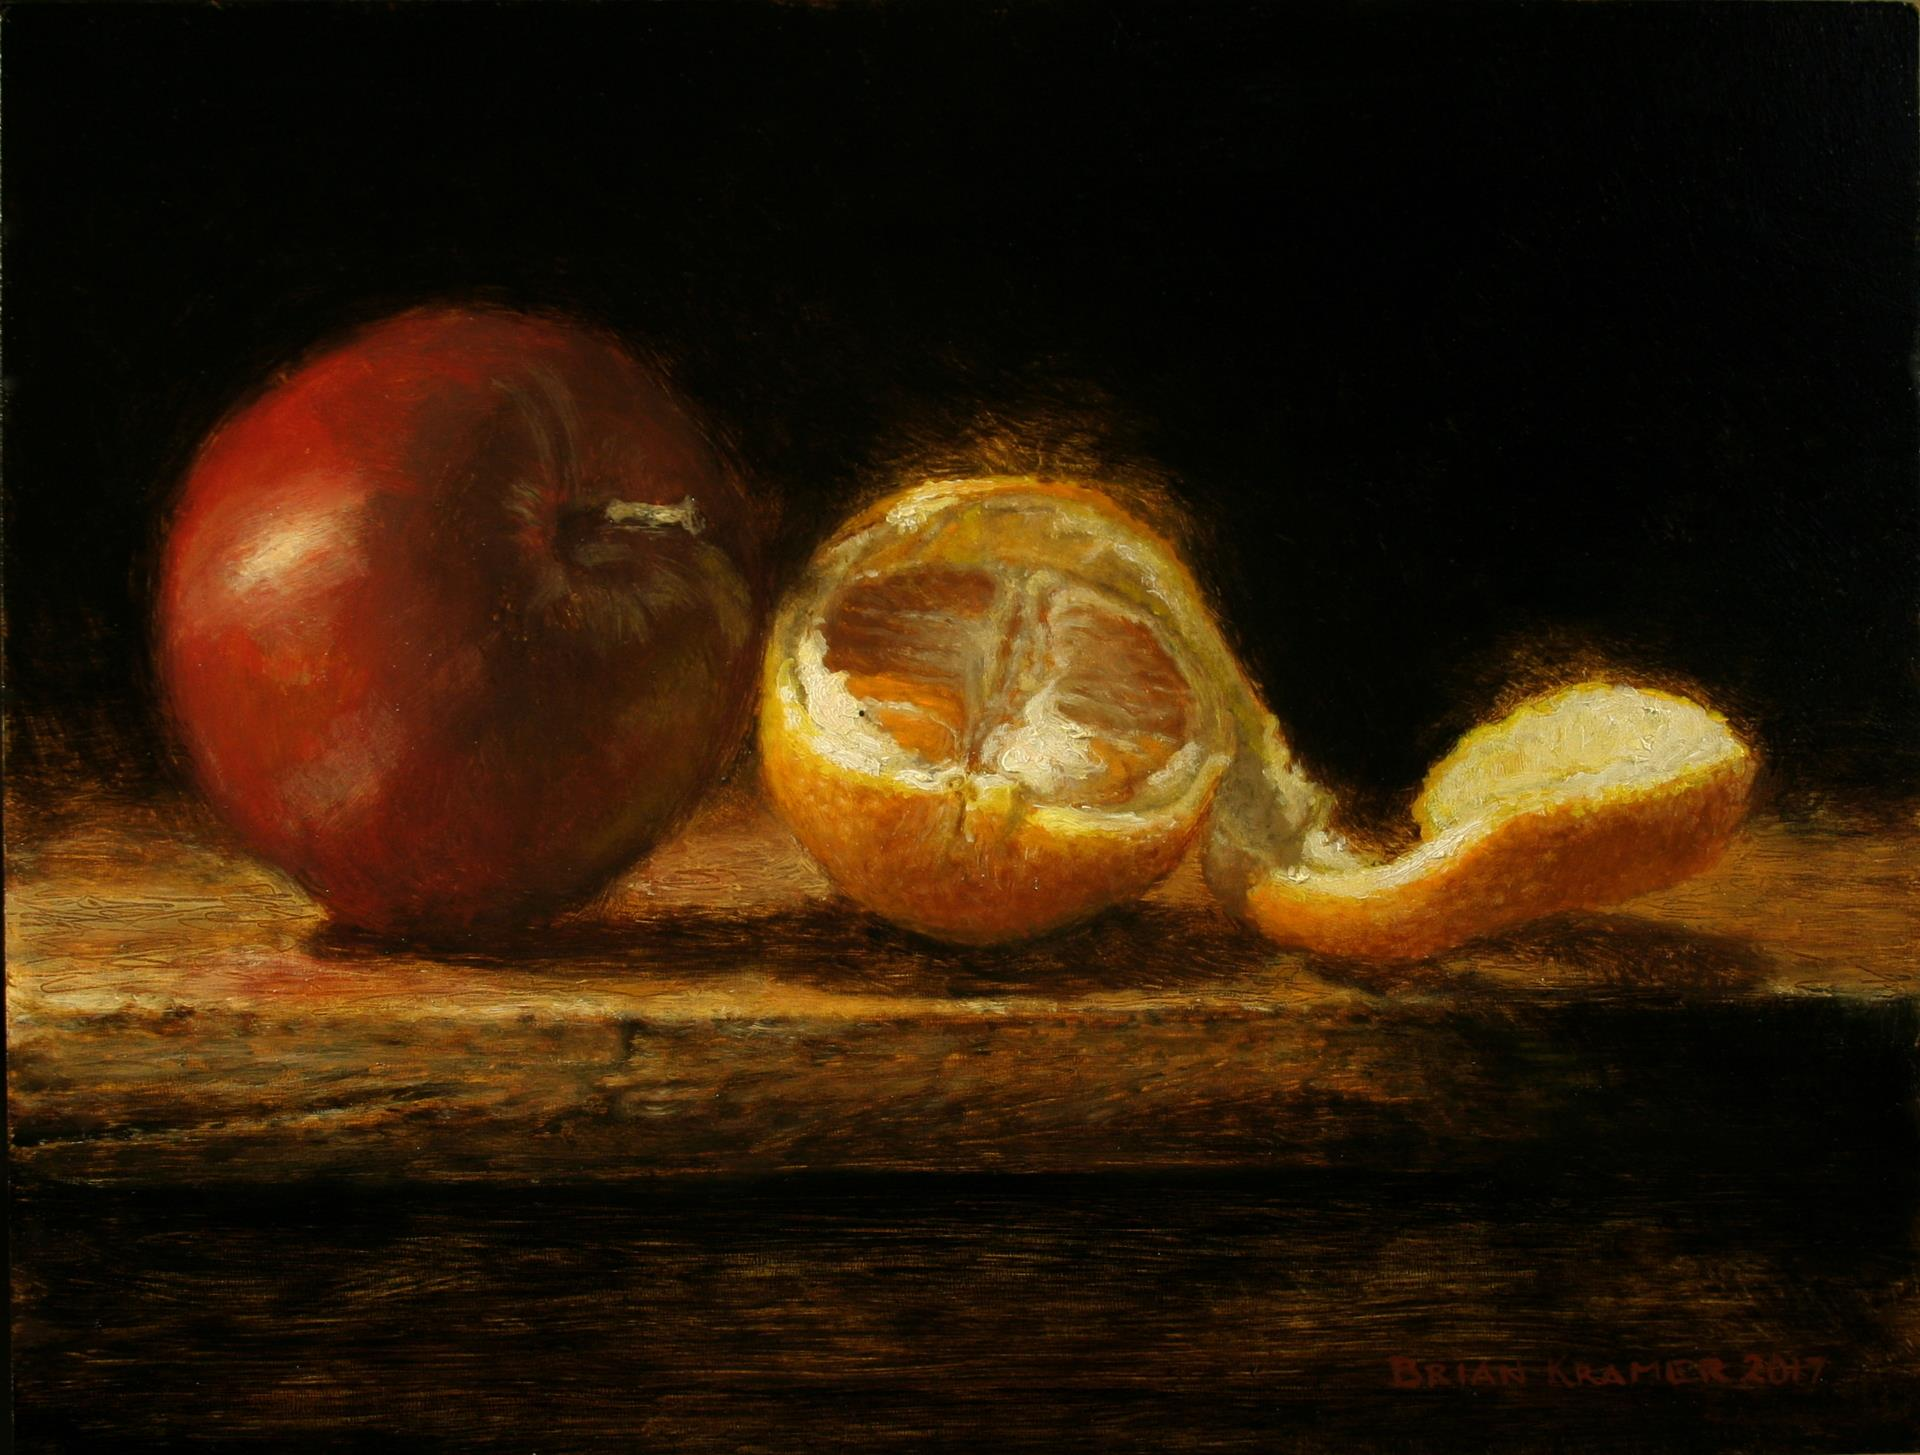 Brian Kramer, Apple and Orange, oil on panel